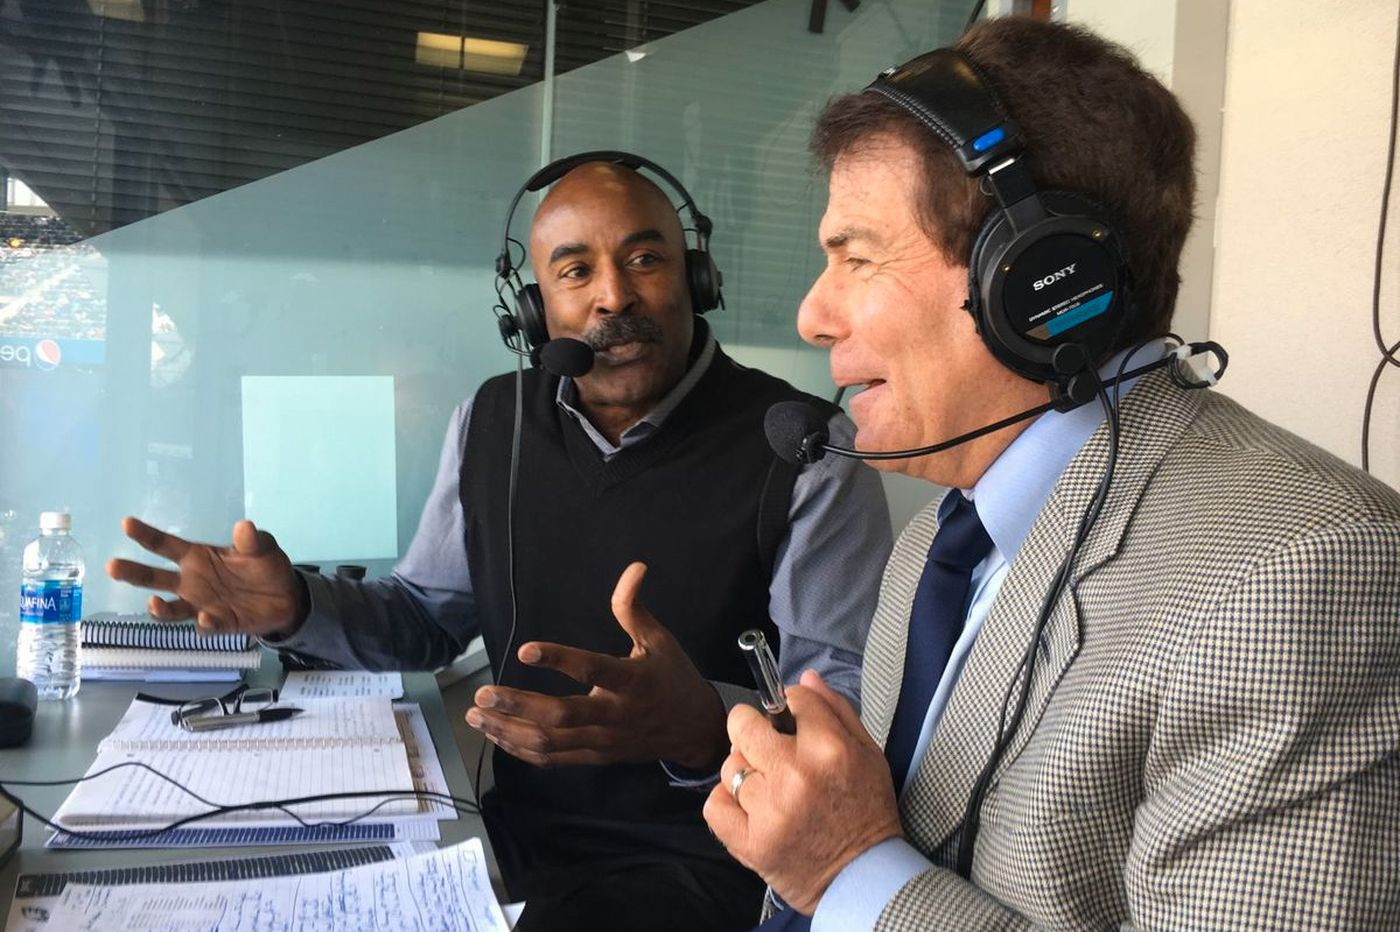 Eagles announcer Merrill Reese wasn't happy with how the Saints ended the game